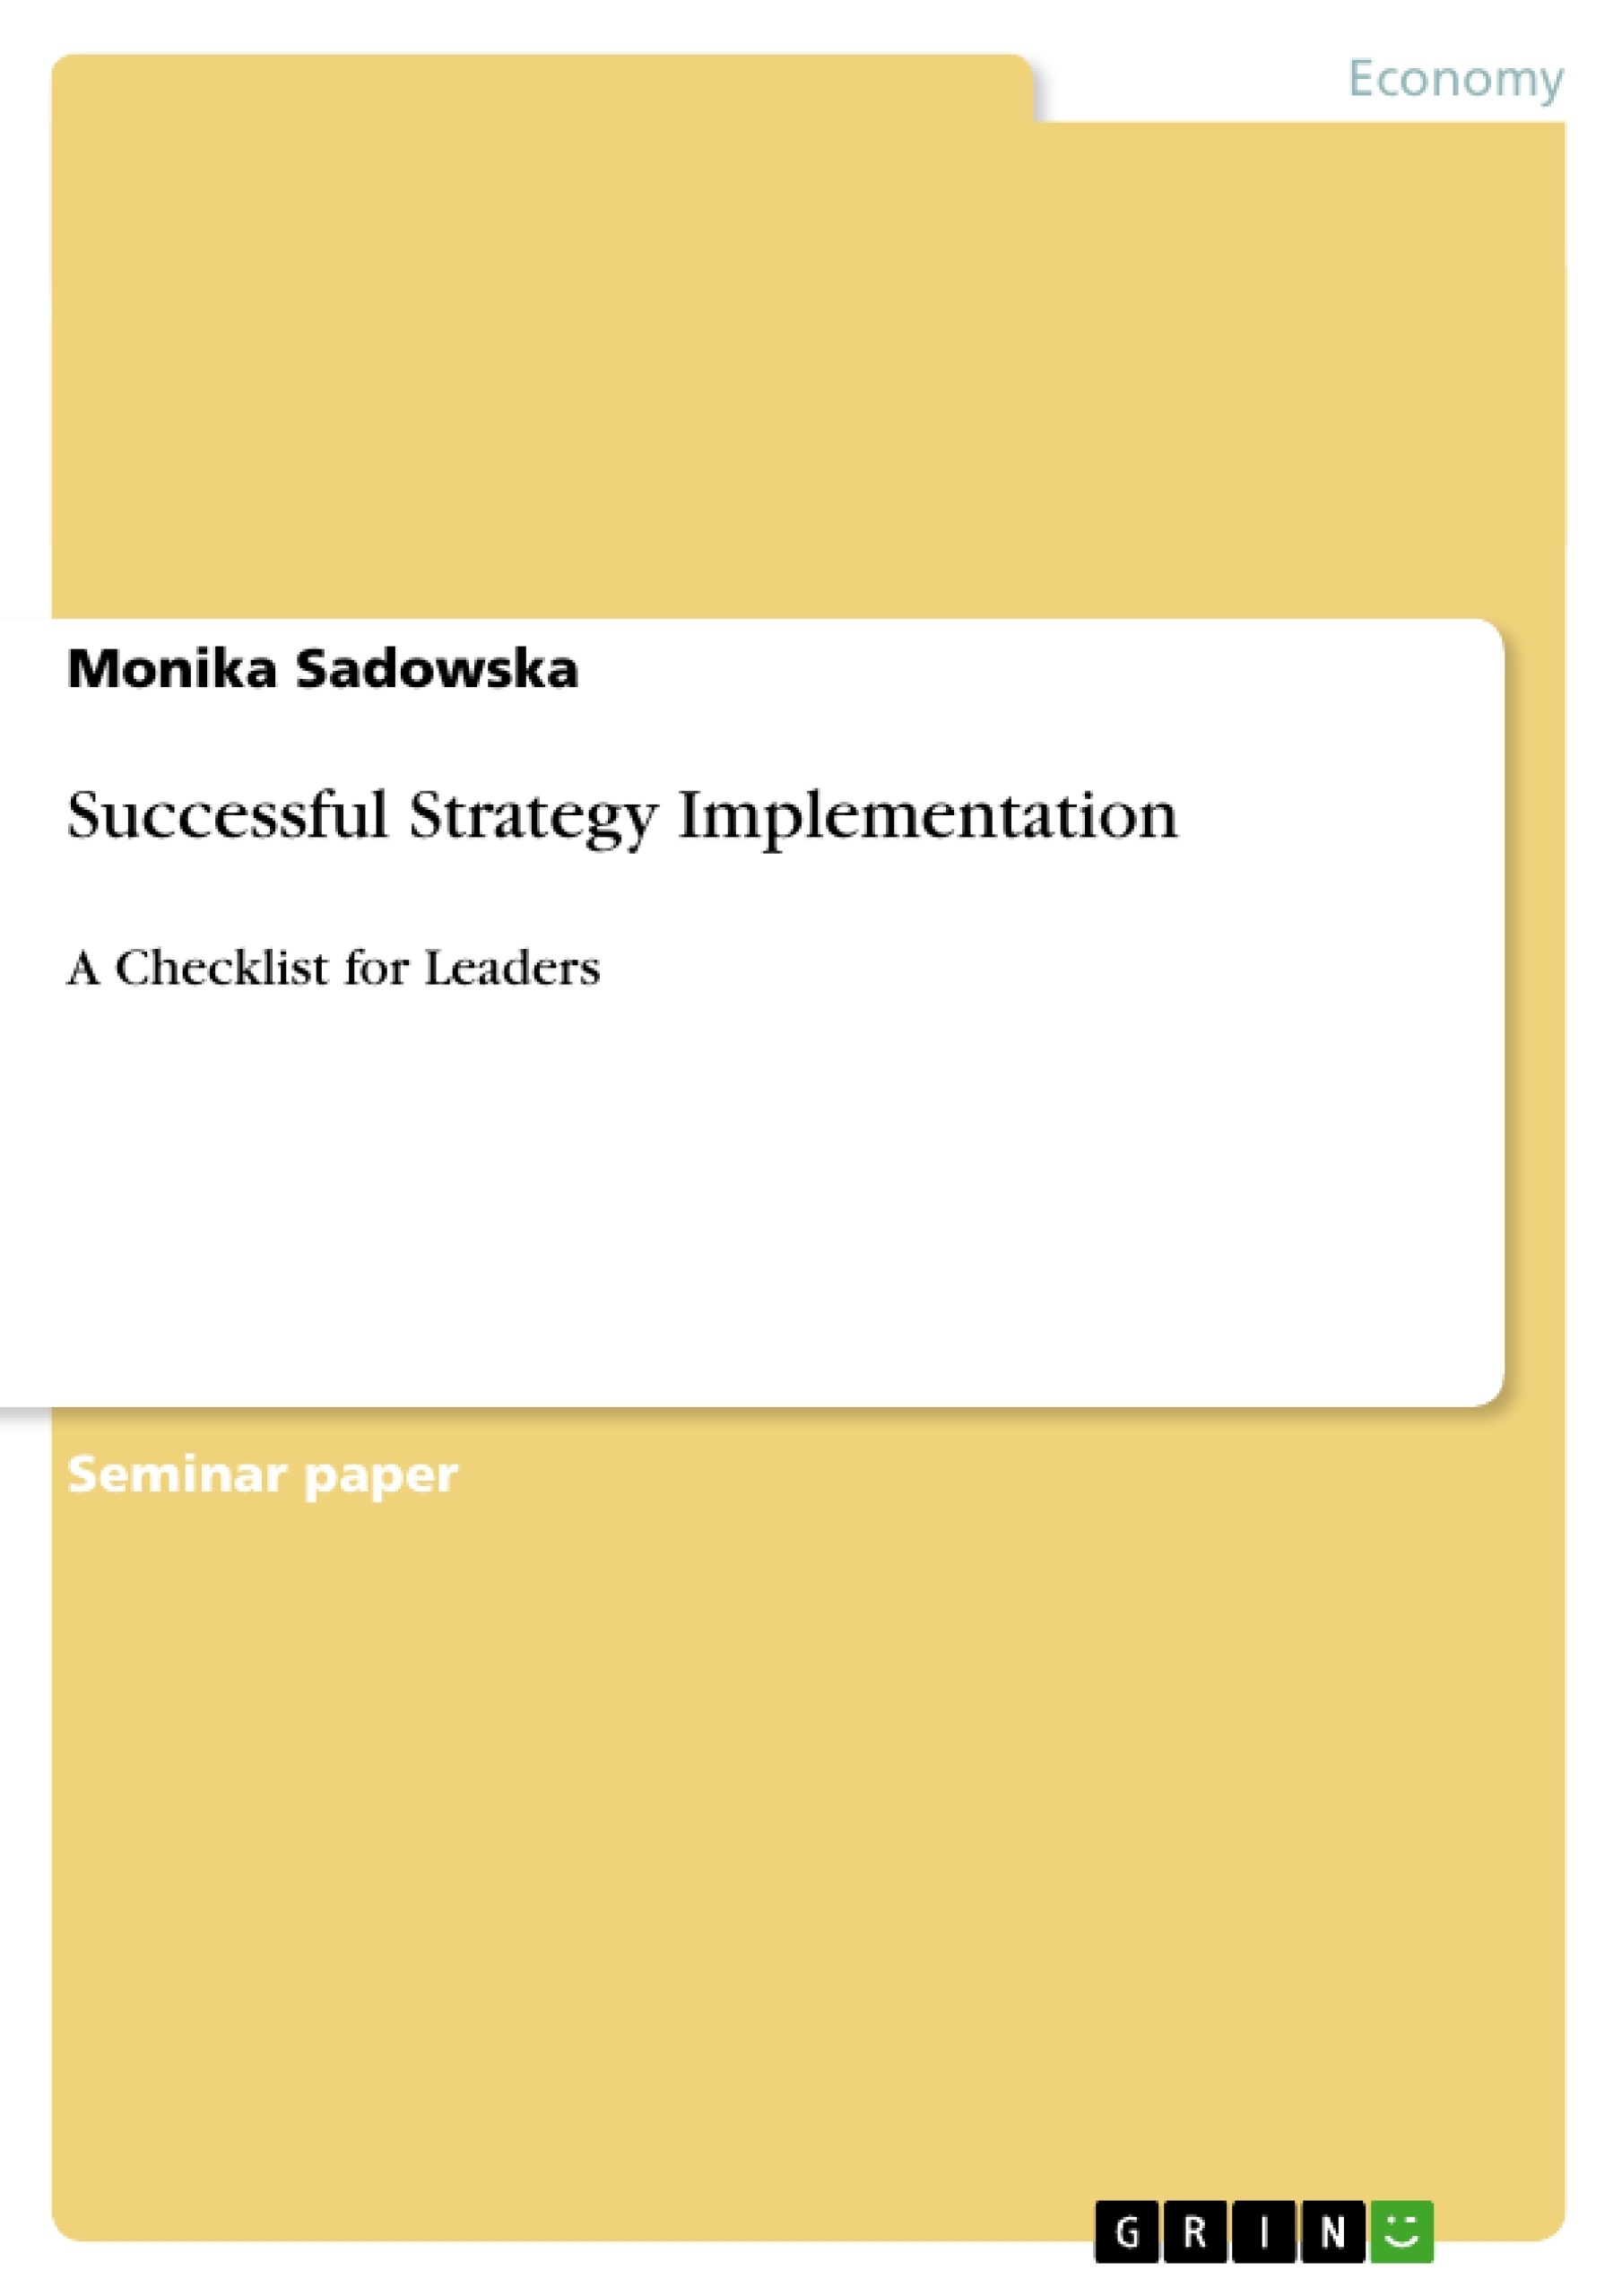 Title: Successful Strategy Implementation